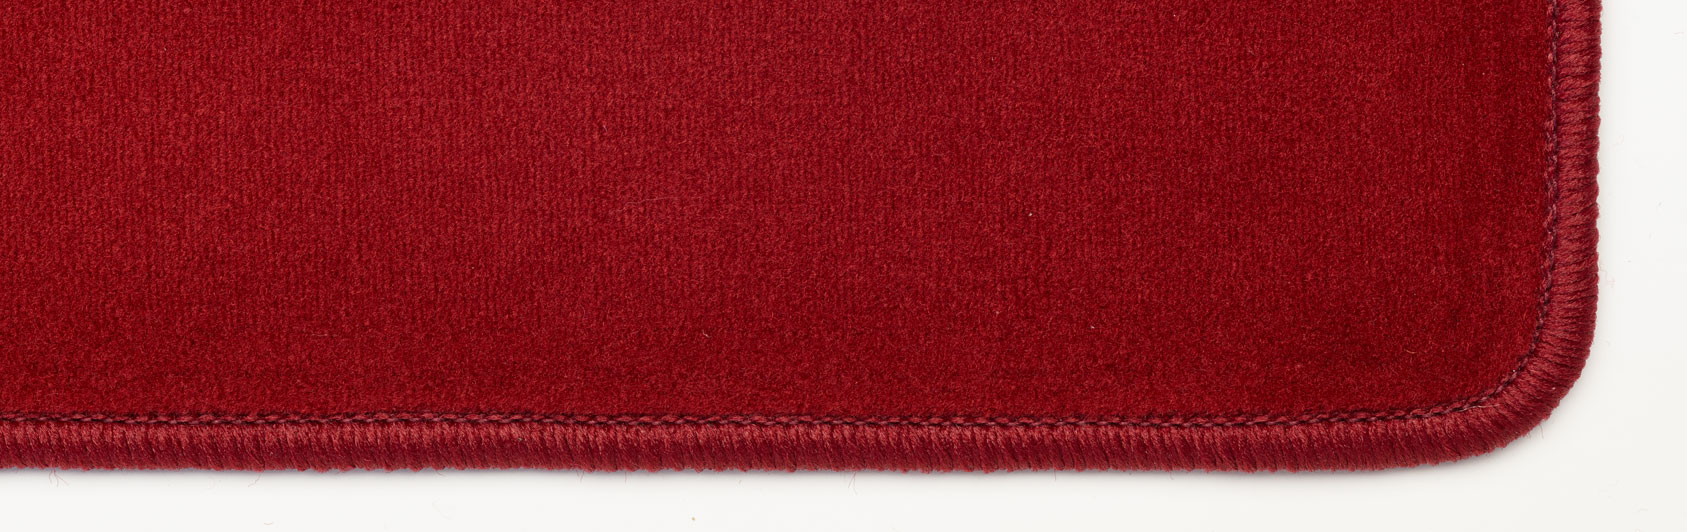 church carpet velvet color code 611 color light red